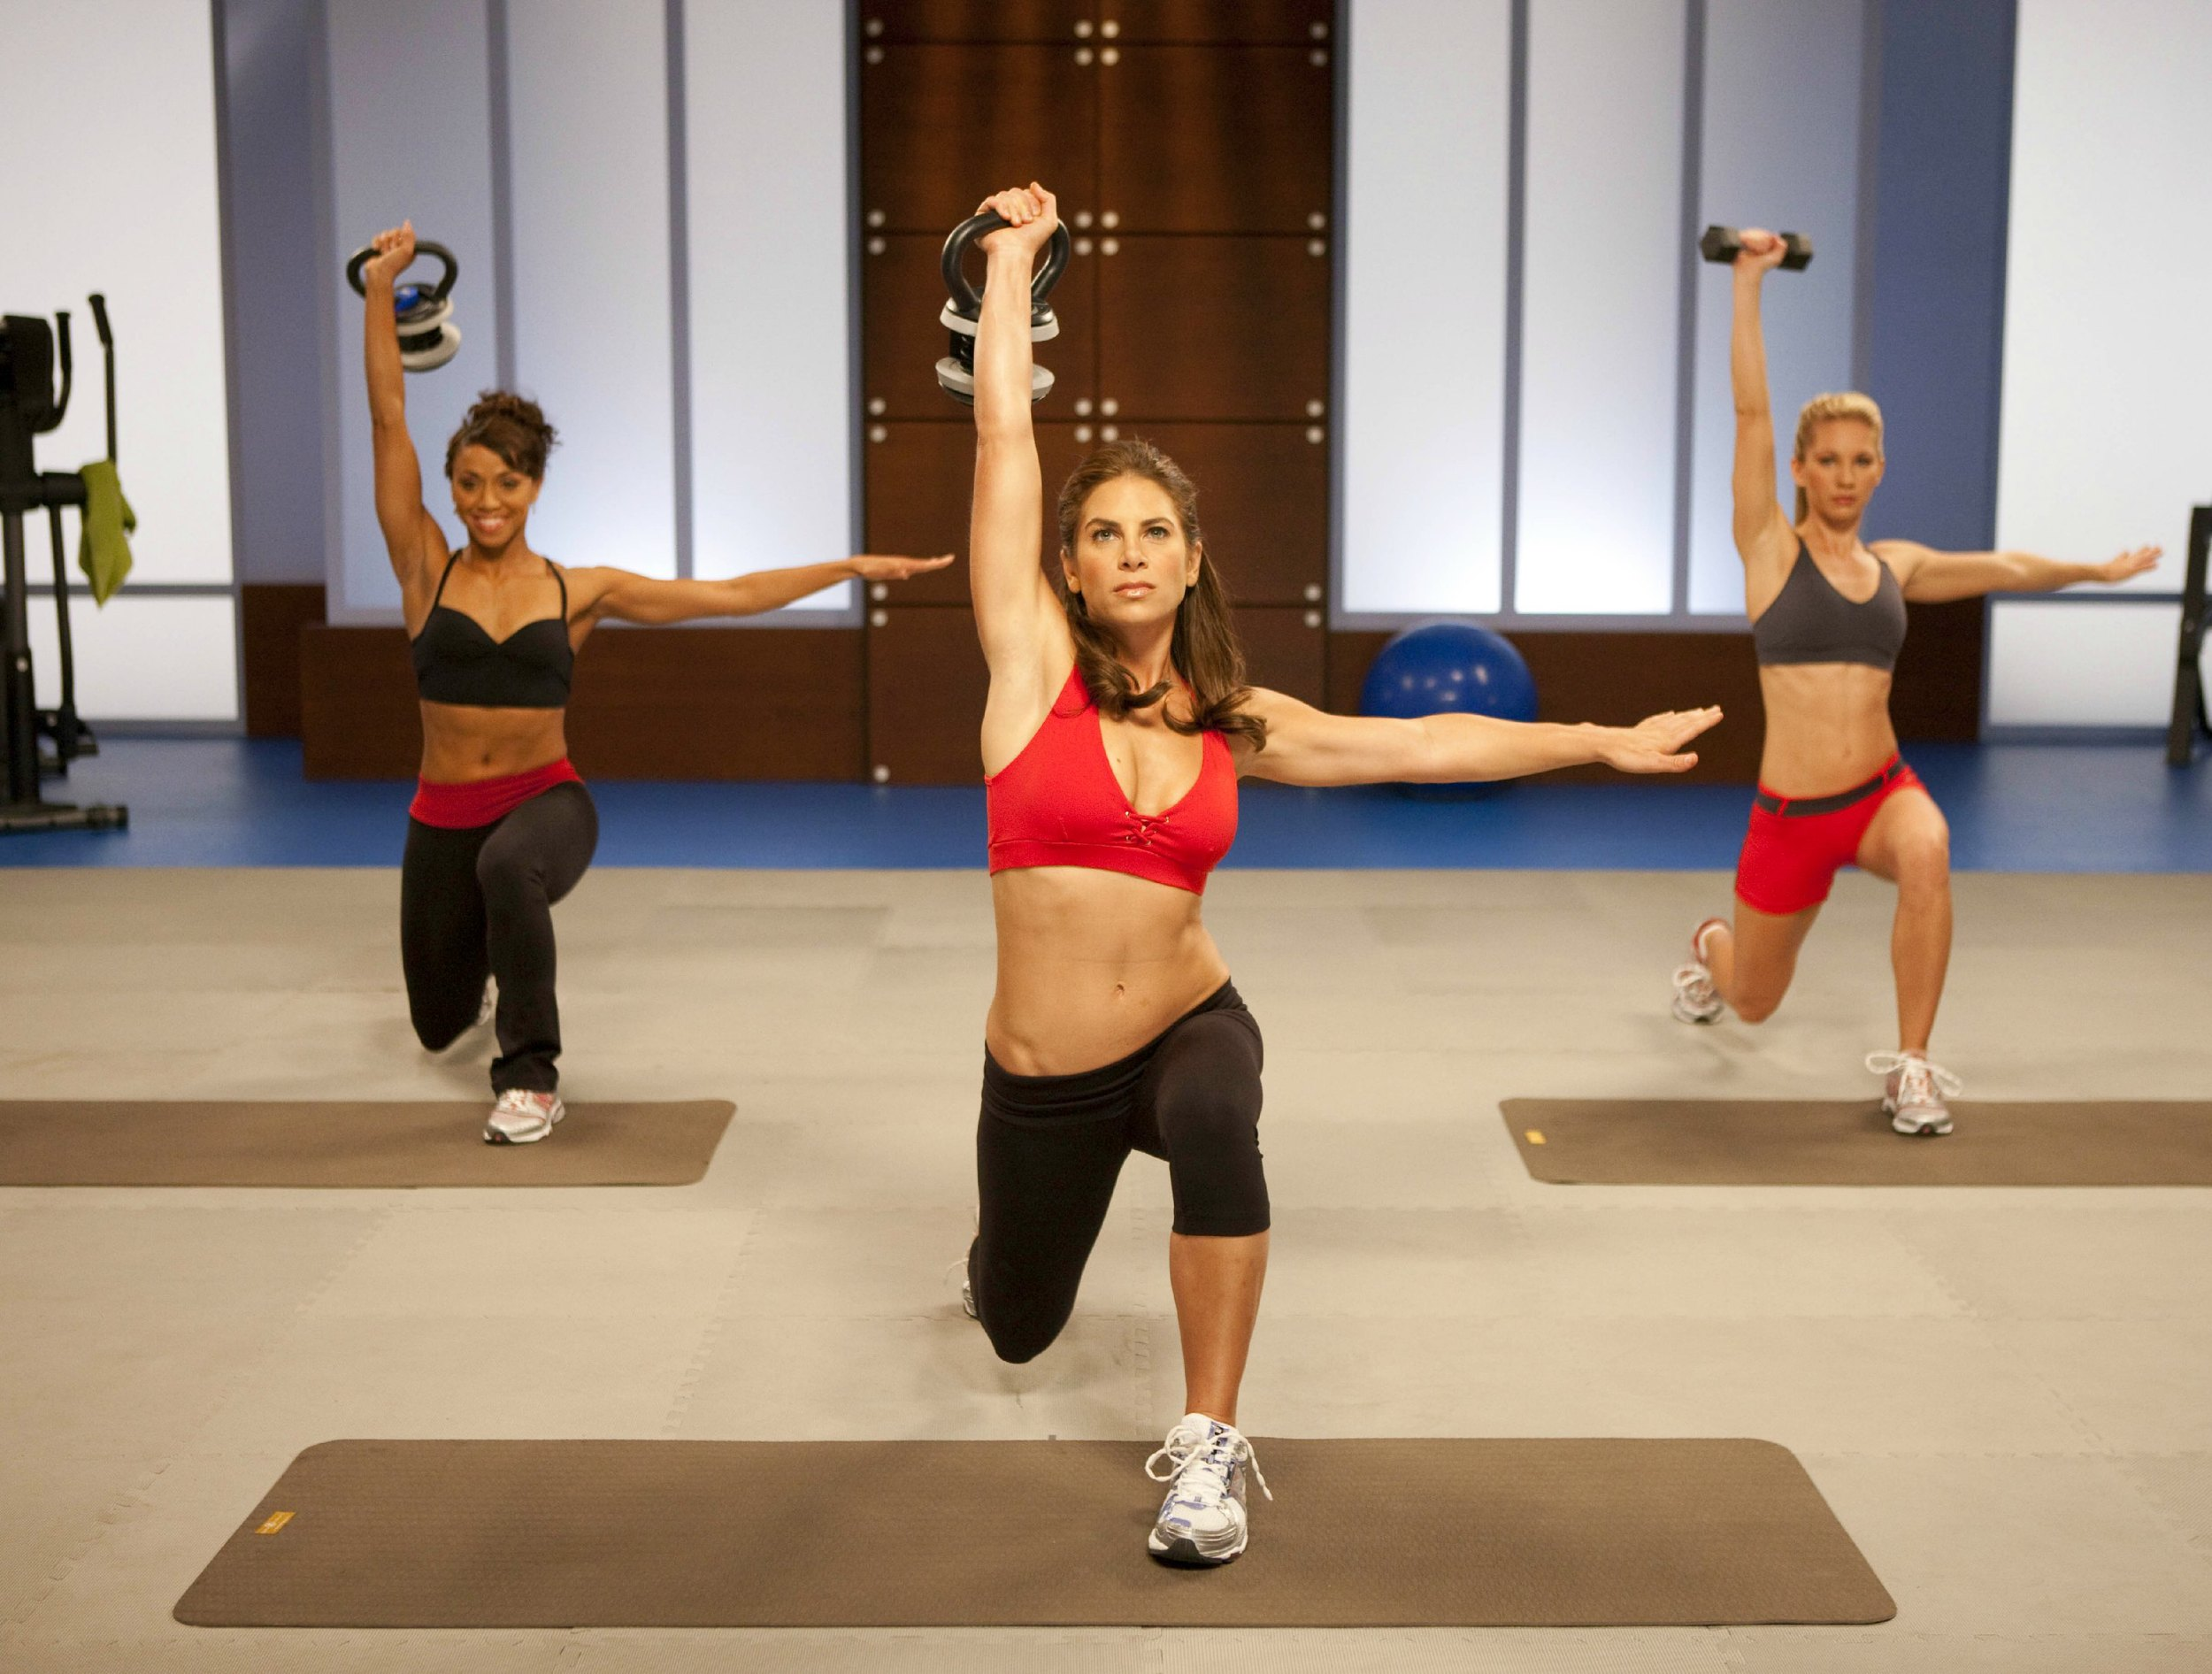 jillian-michaels-youtube-workout.JPG